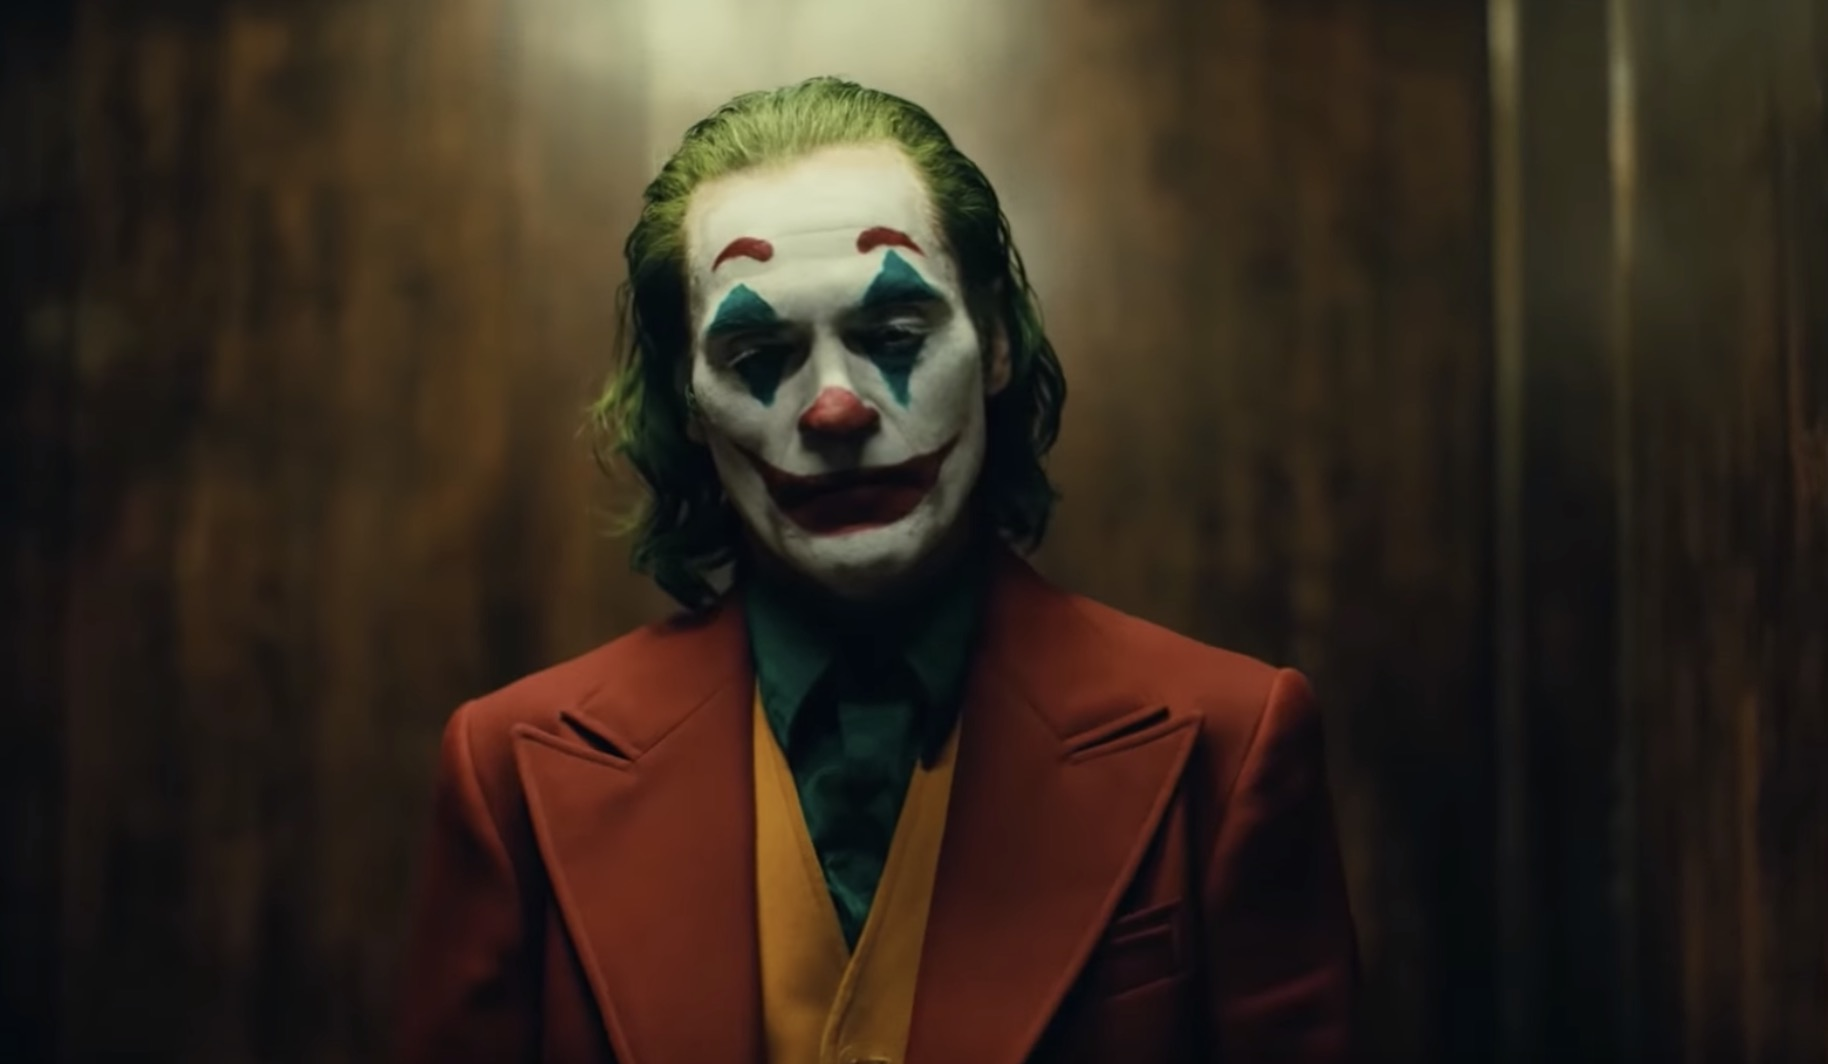 La critique du film Joker